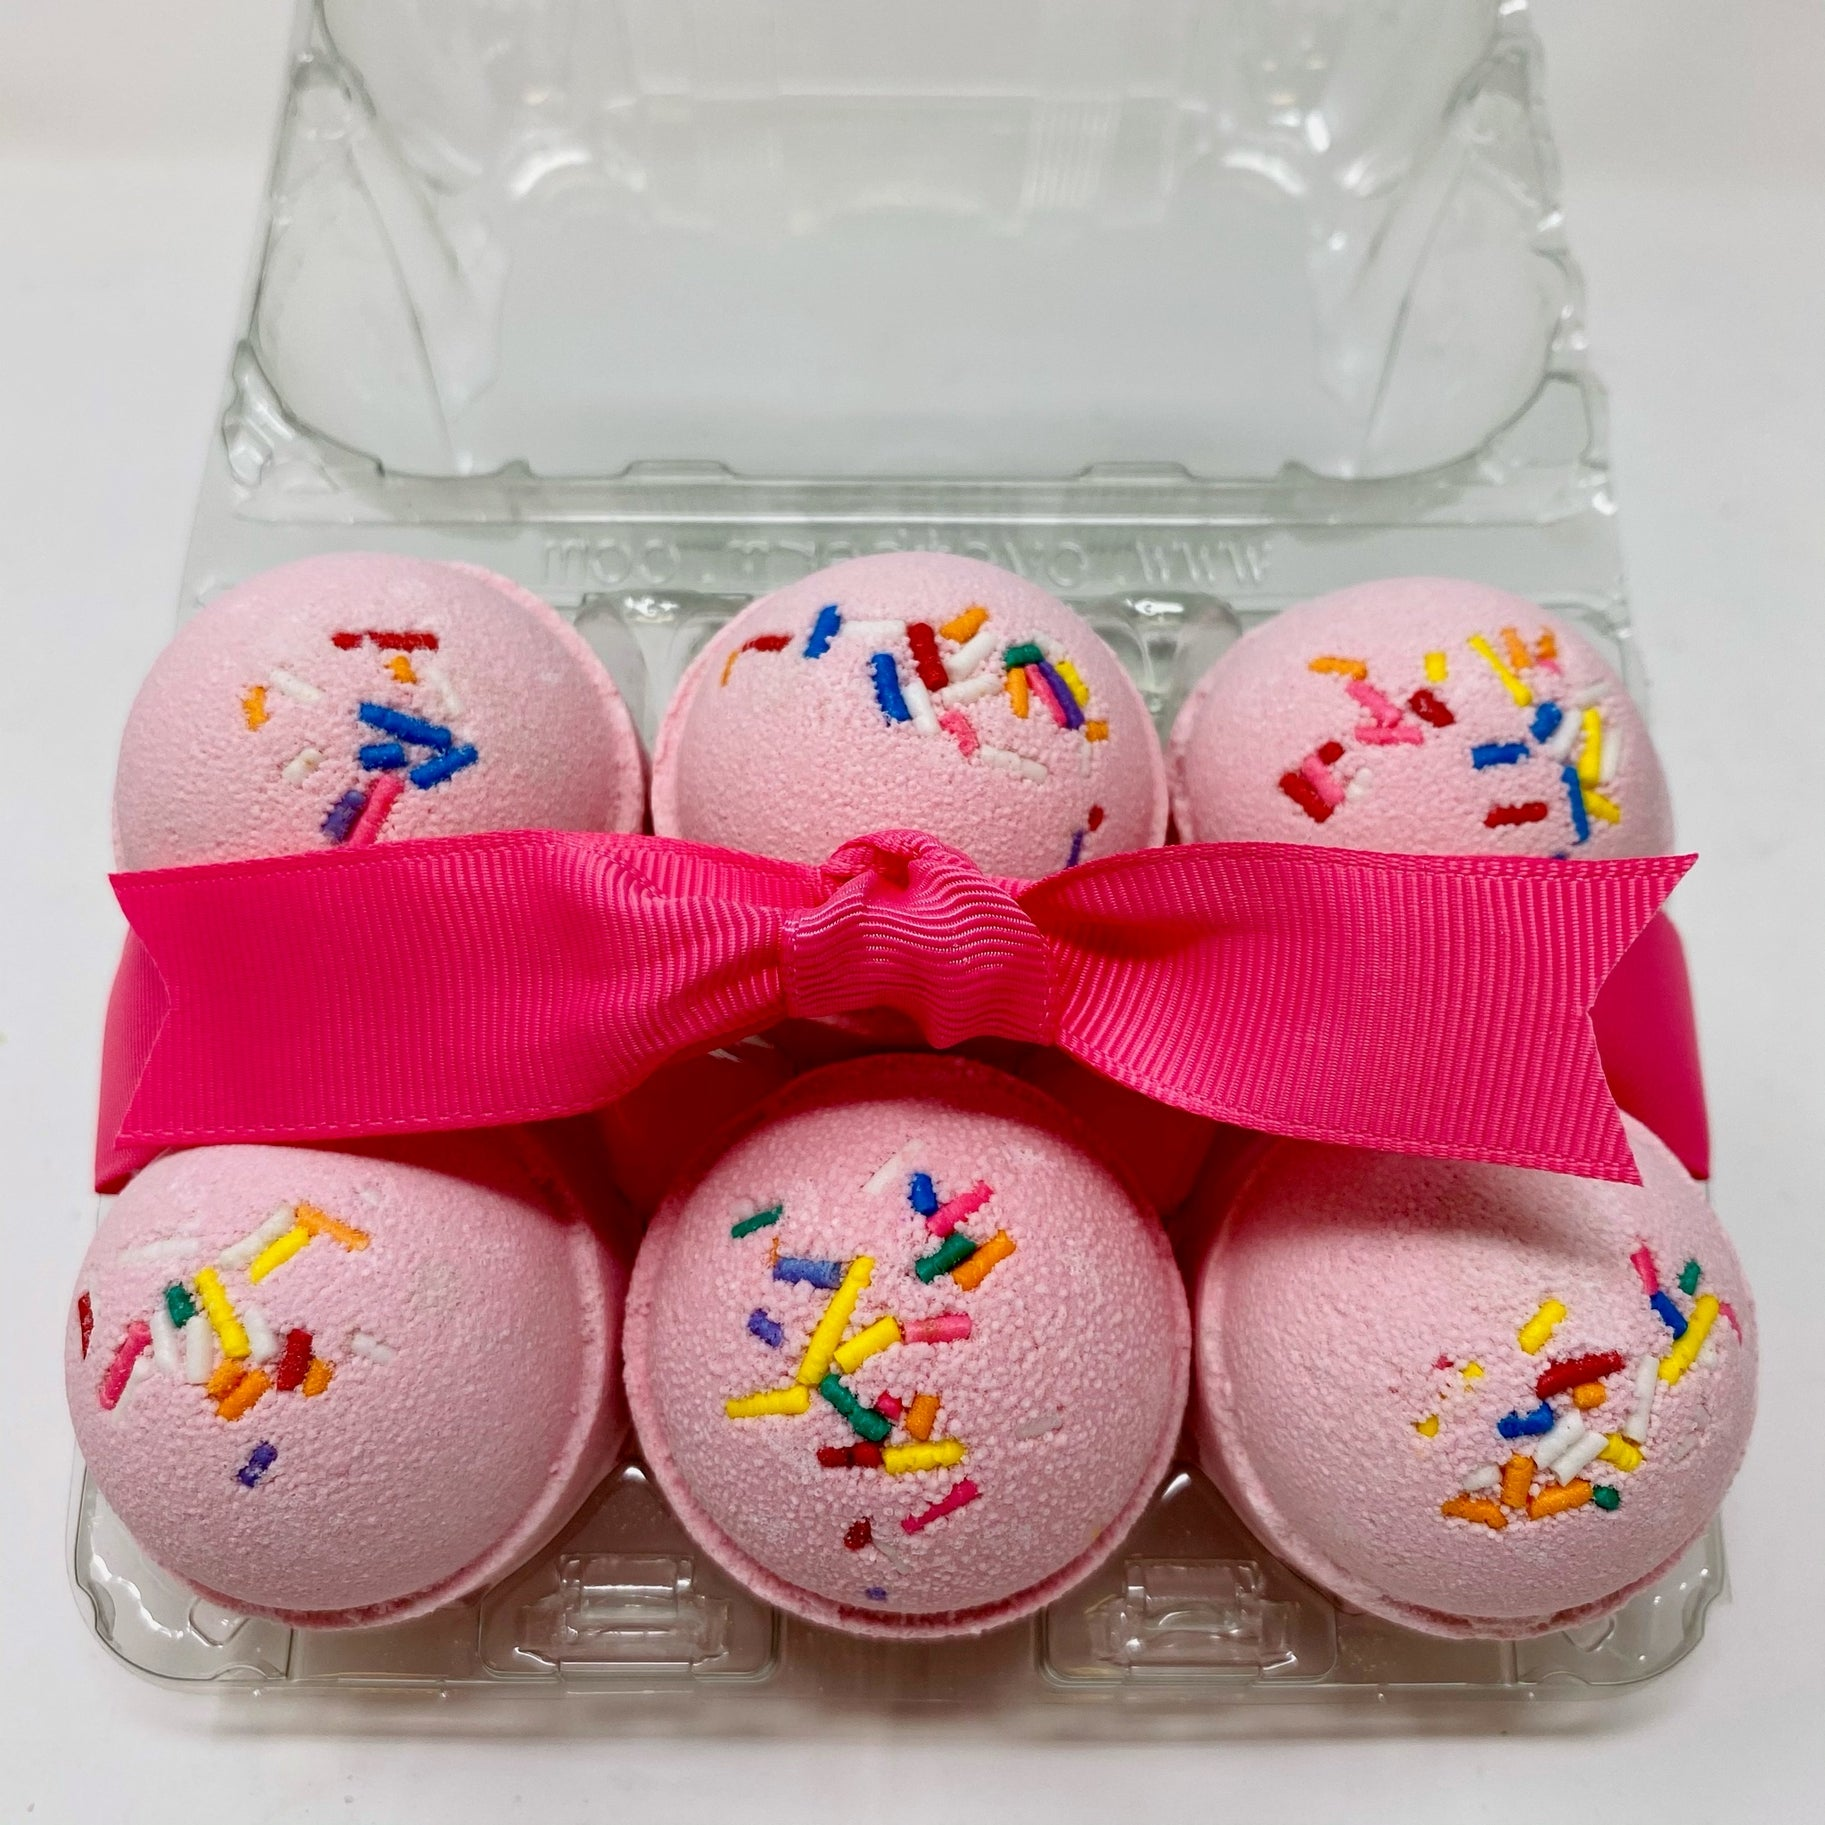 Six Pack of Bath Bombs